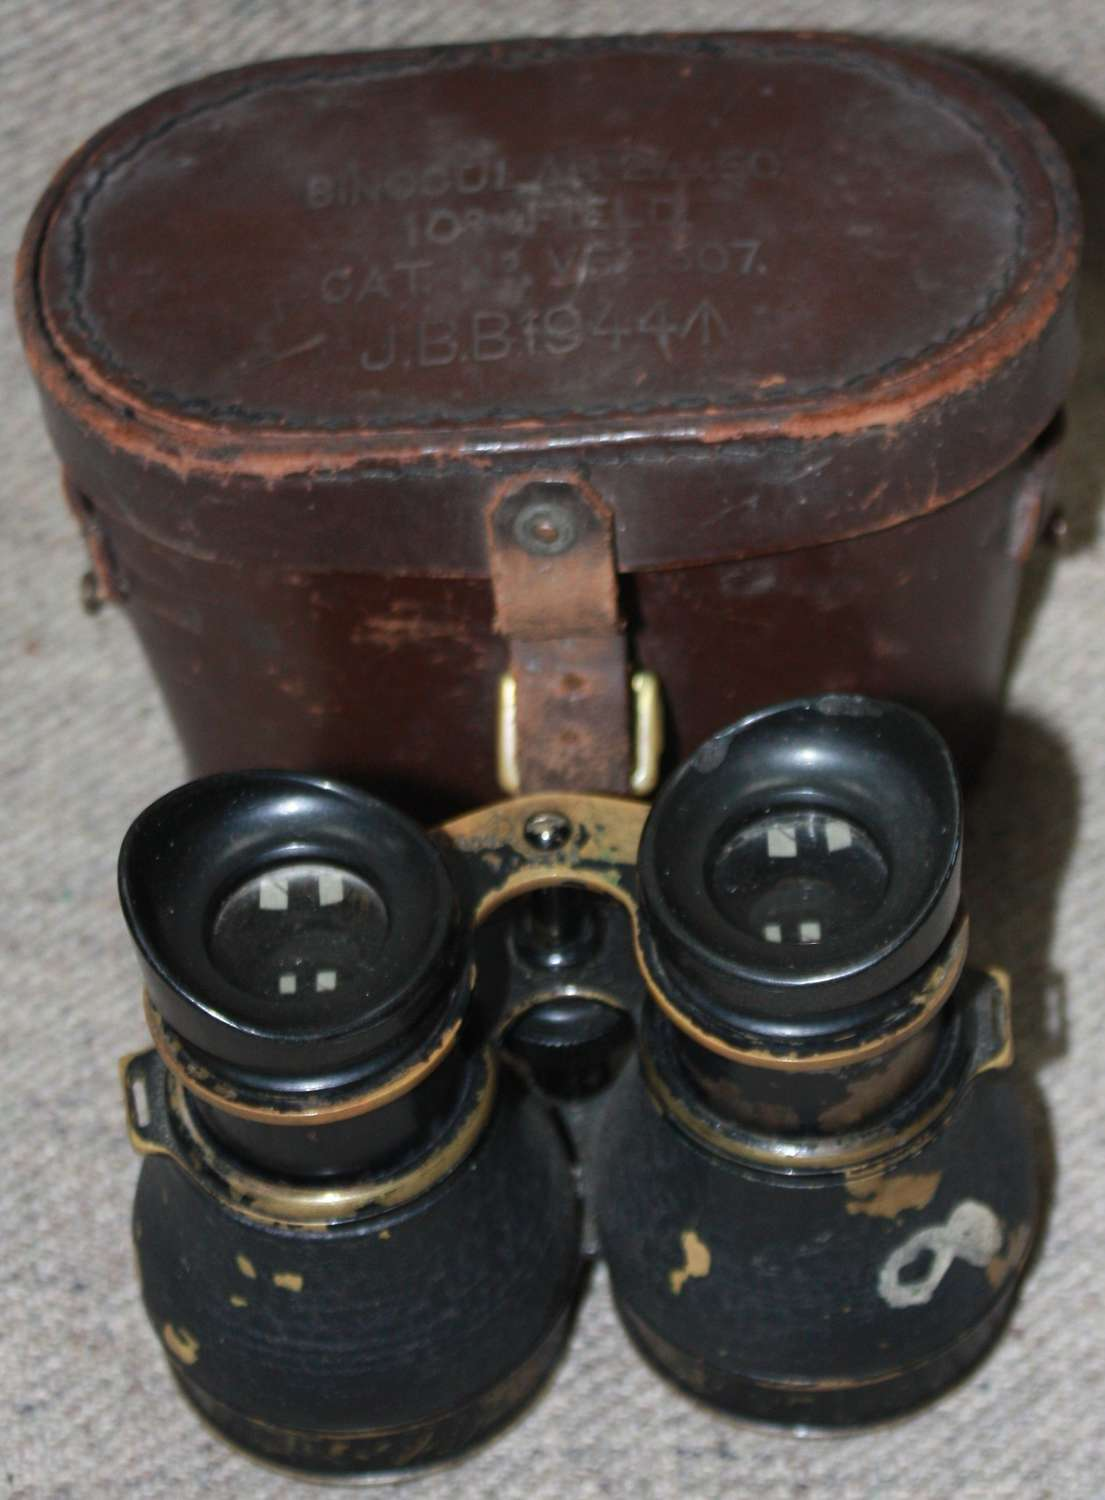 A PAIR OF THE NIGHT USE AIRBORNE BINOCULARS